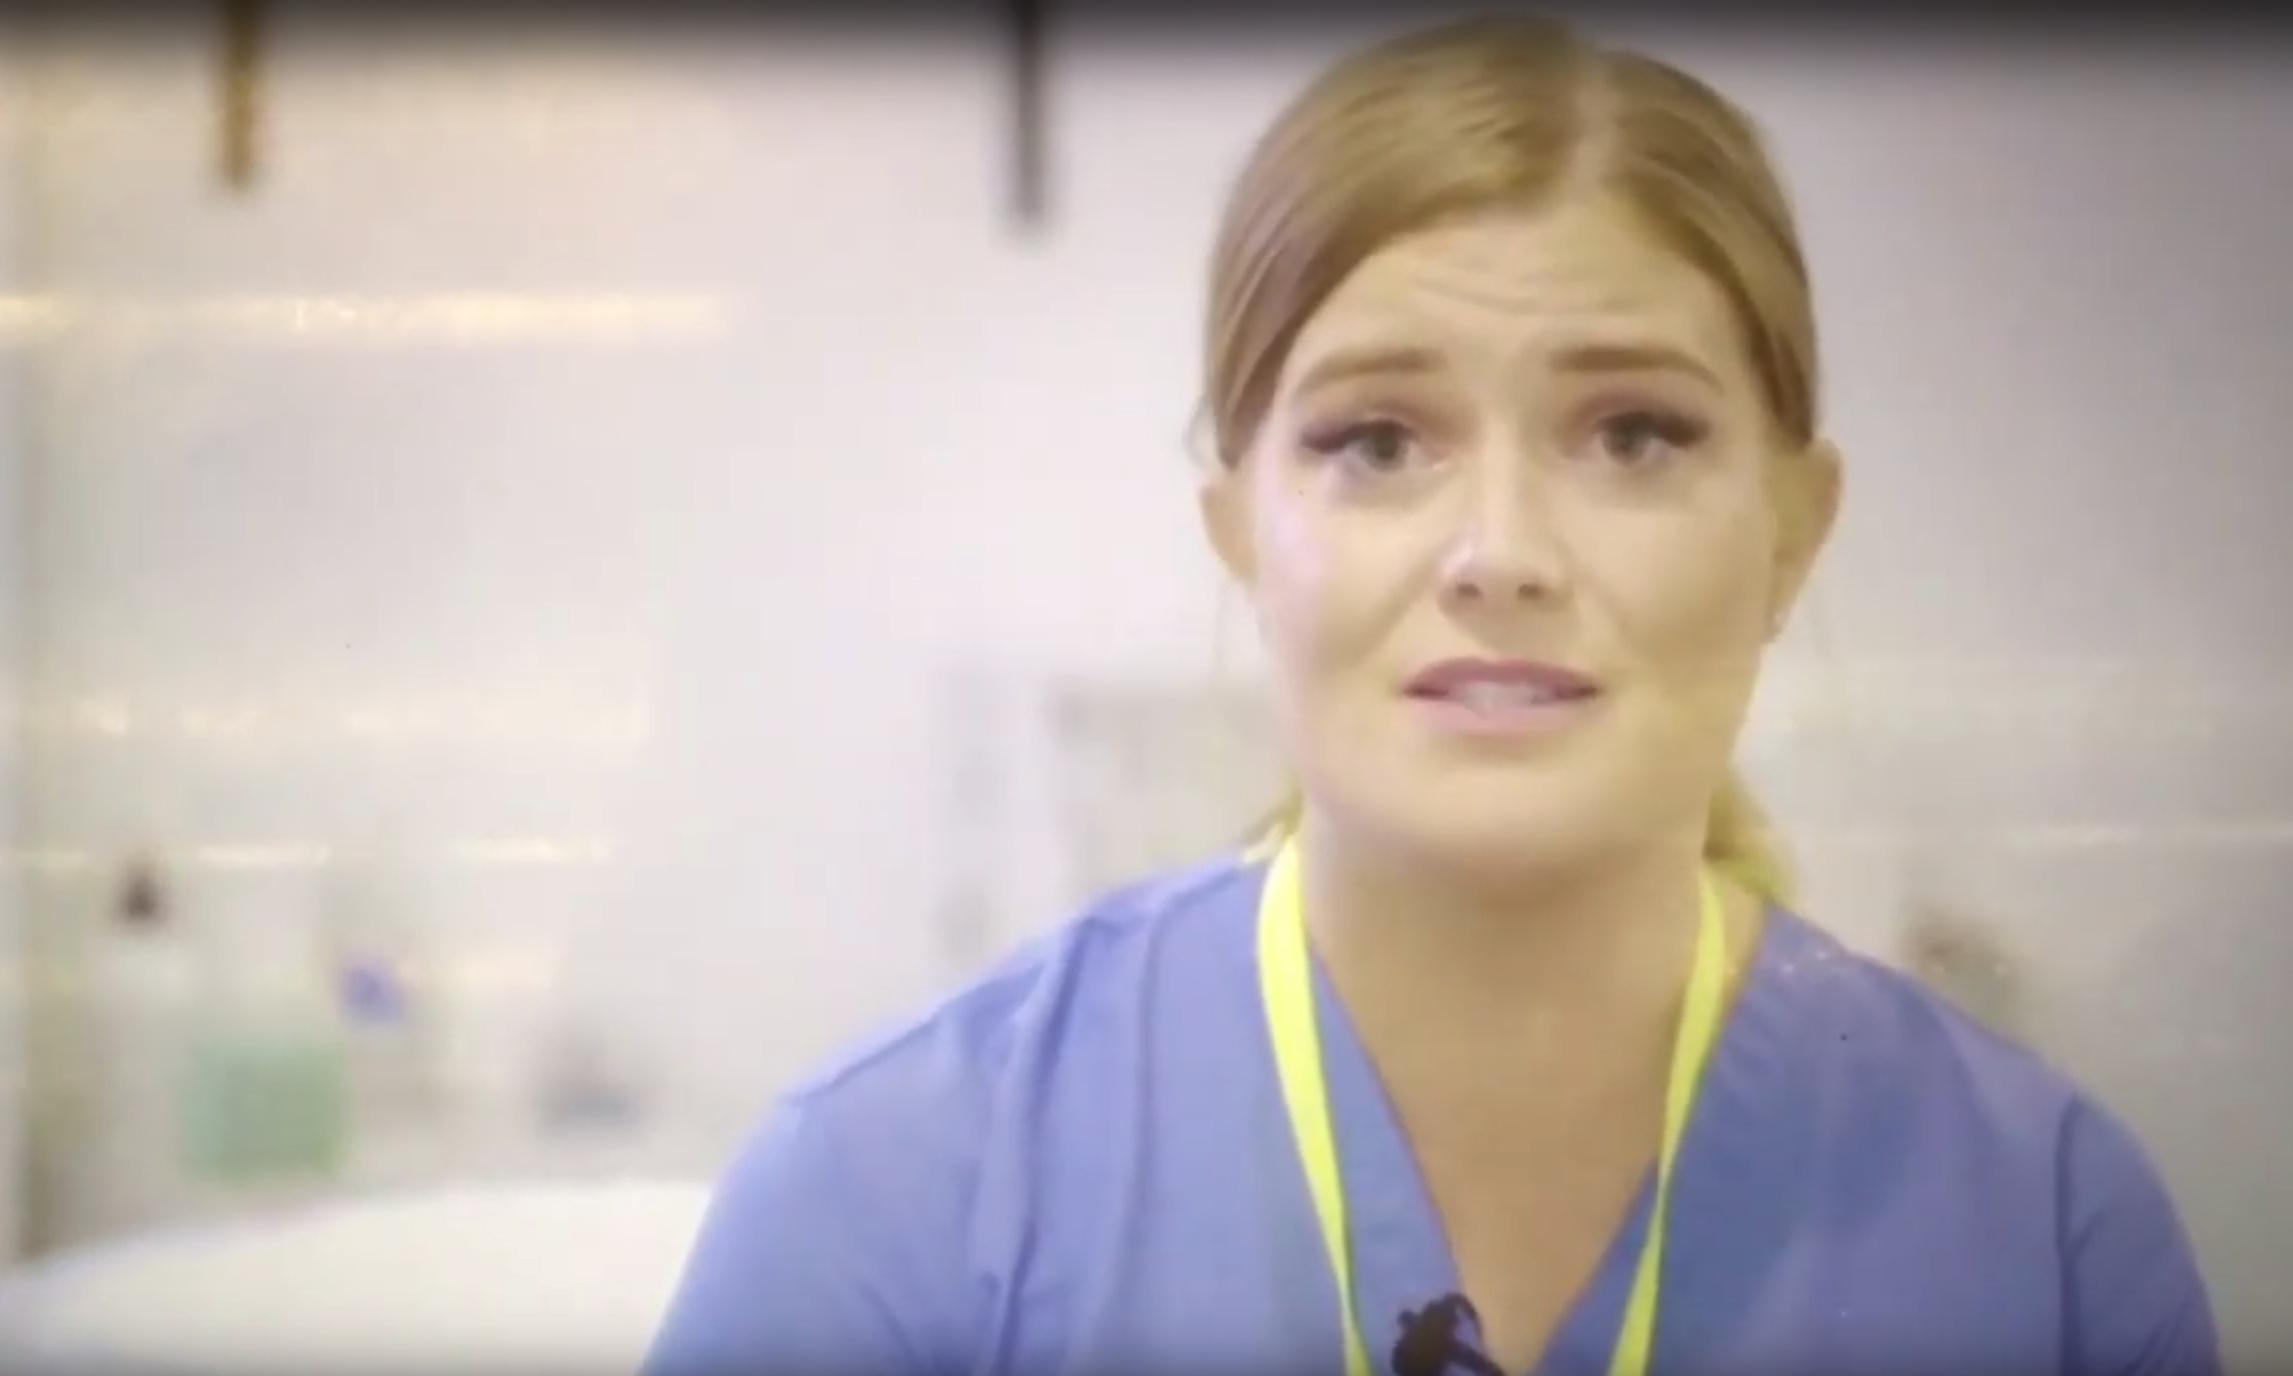 Fake nurse! Welsh Labour withdraws video featuring actor